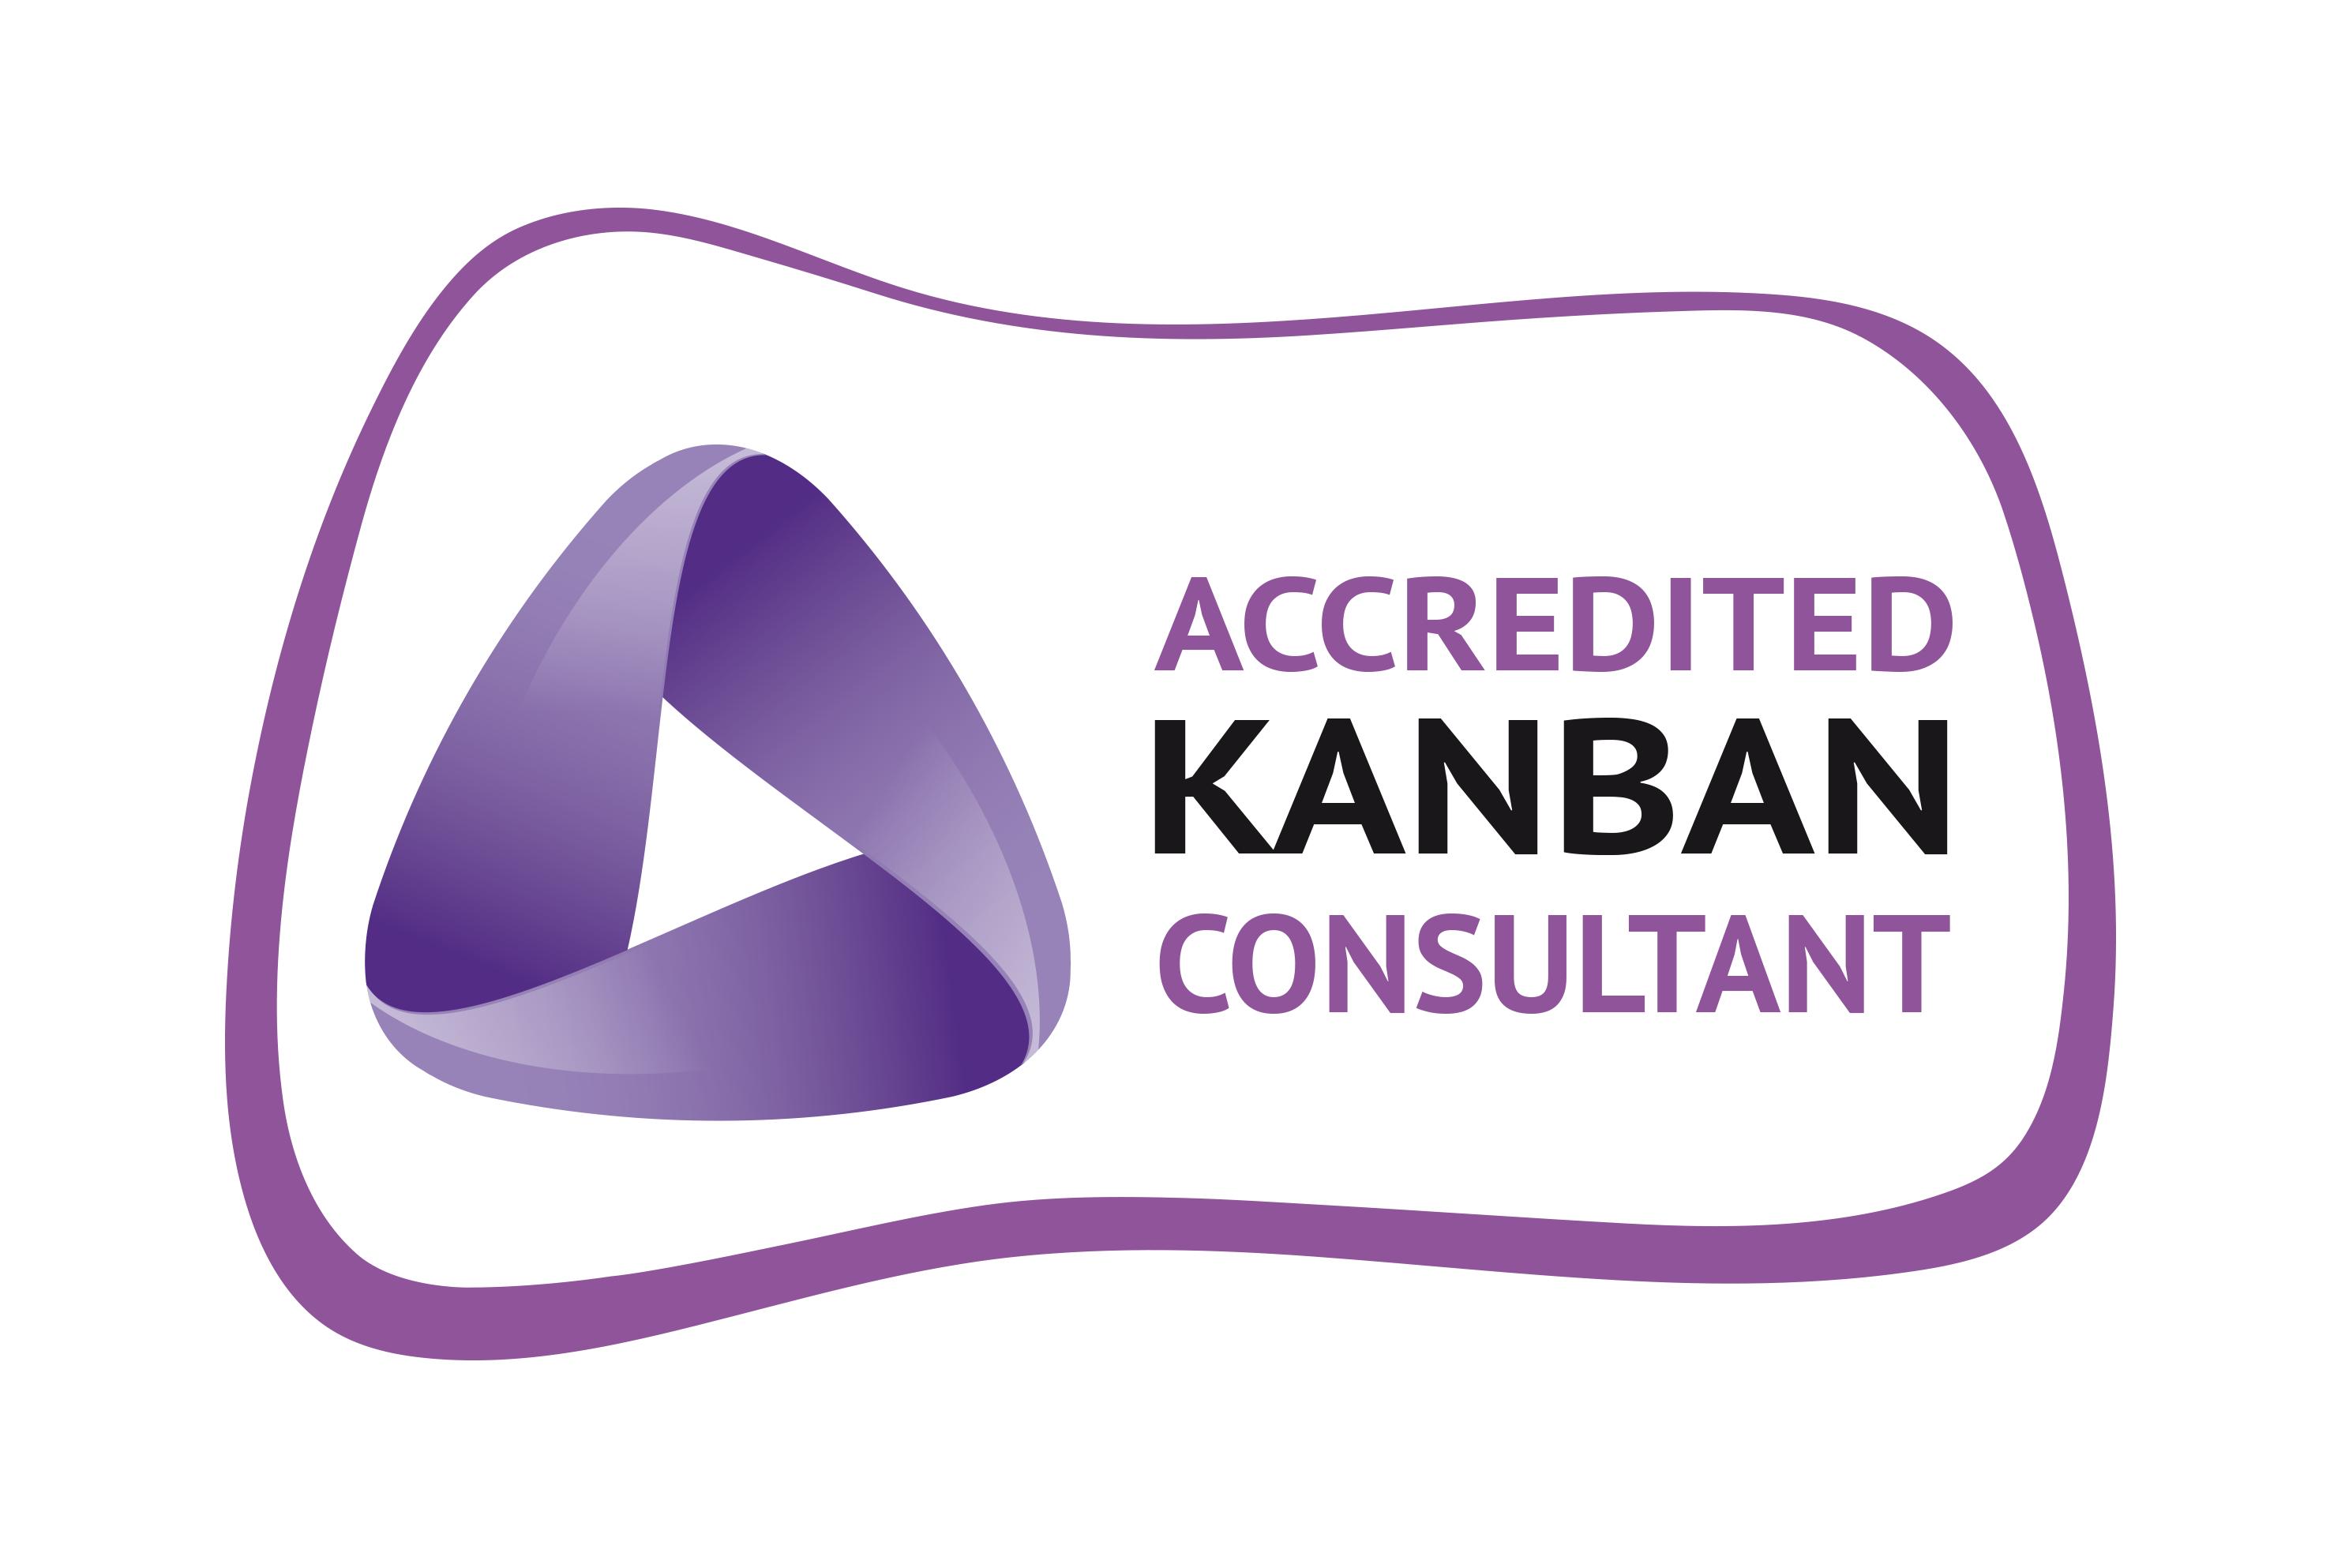 Accredited Kanban Consultant (AKC)